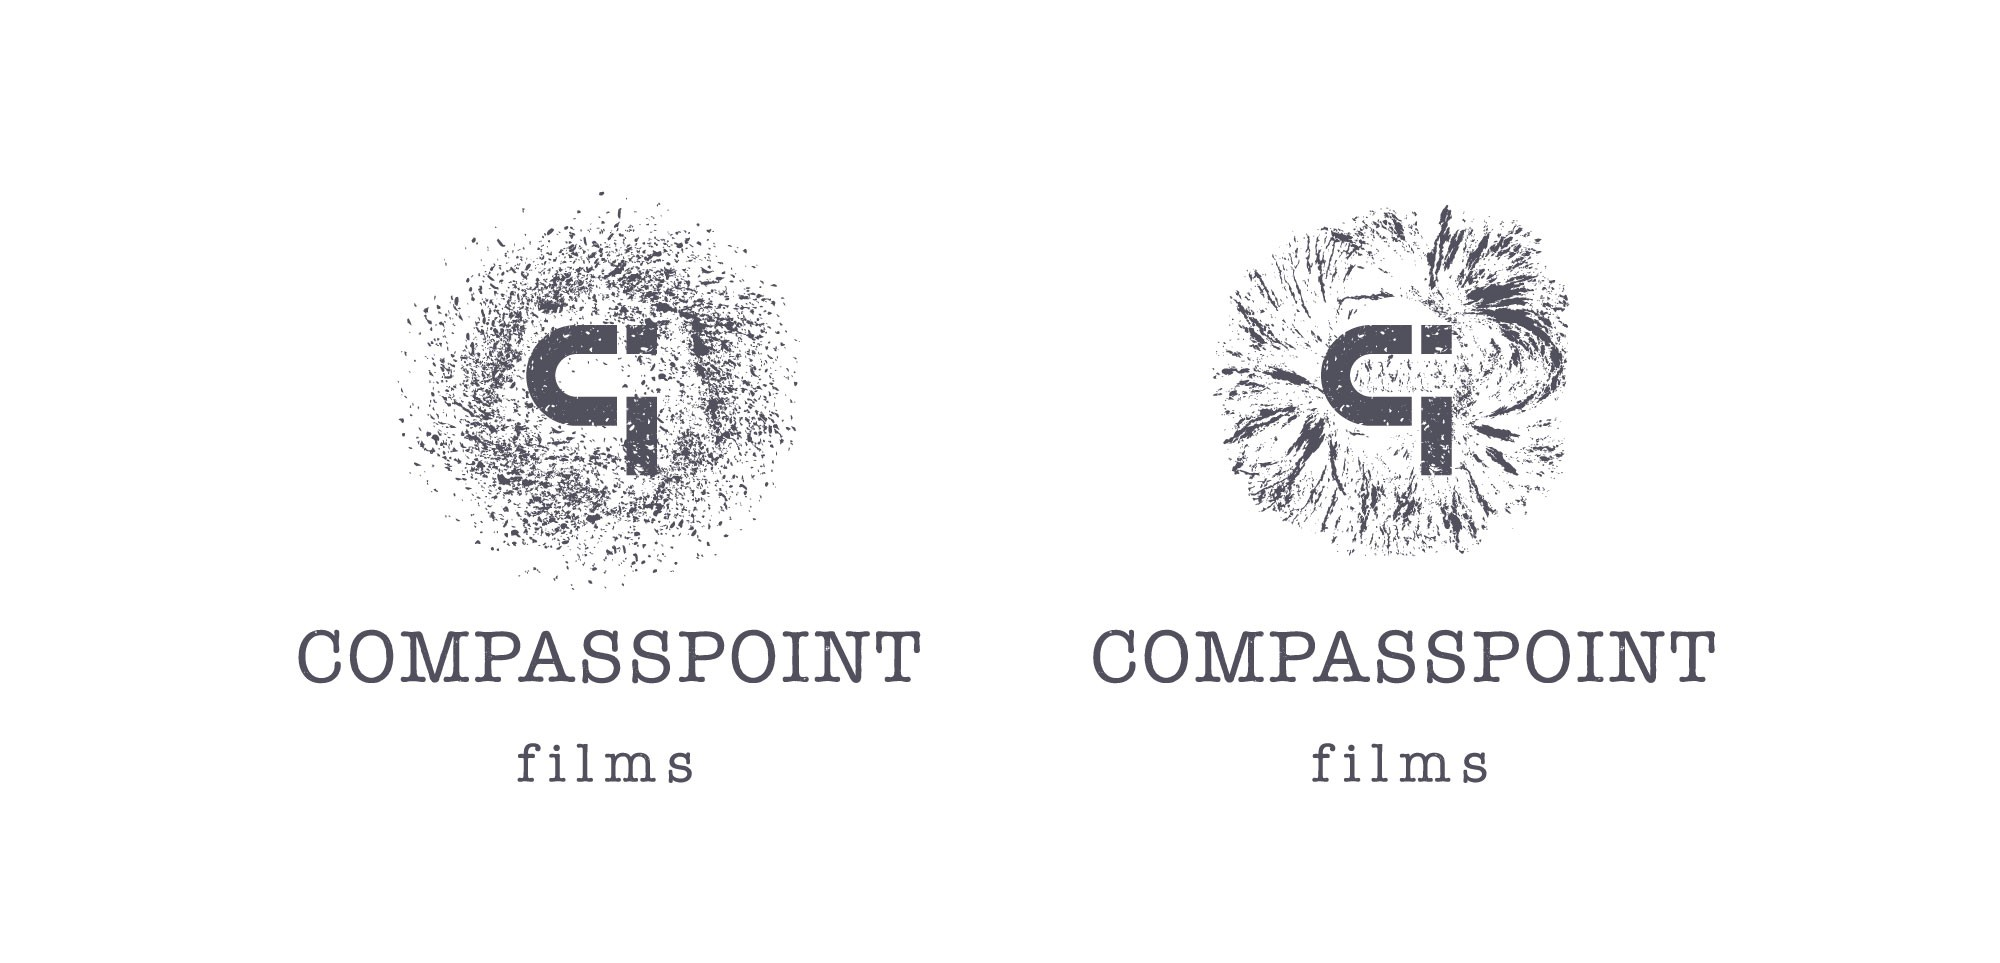 Create a visually striking logo for a boutique film production company.